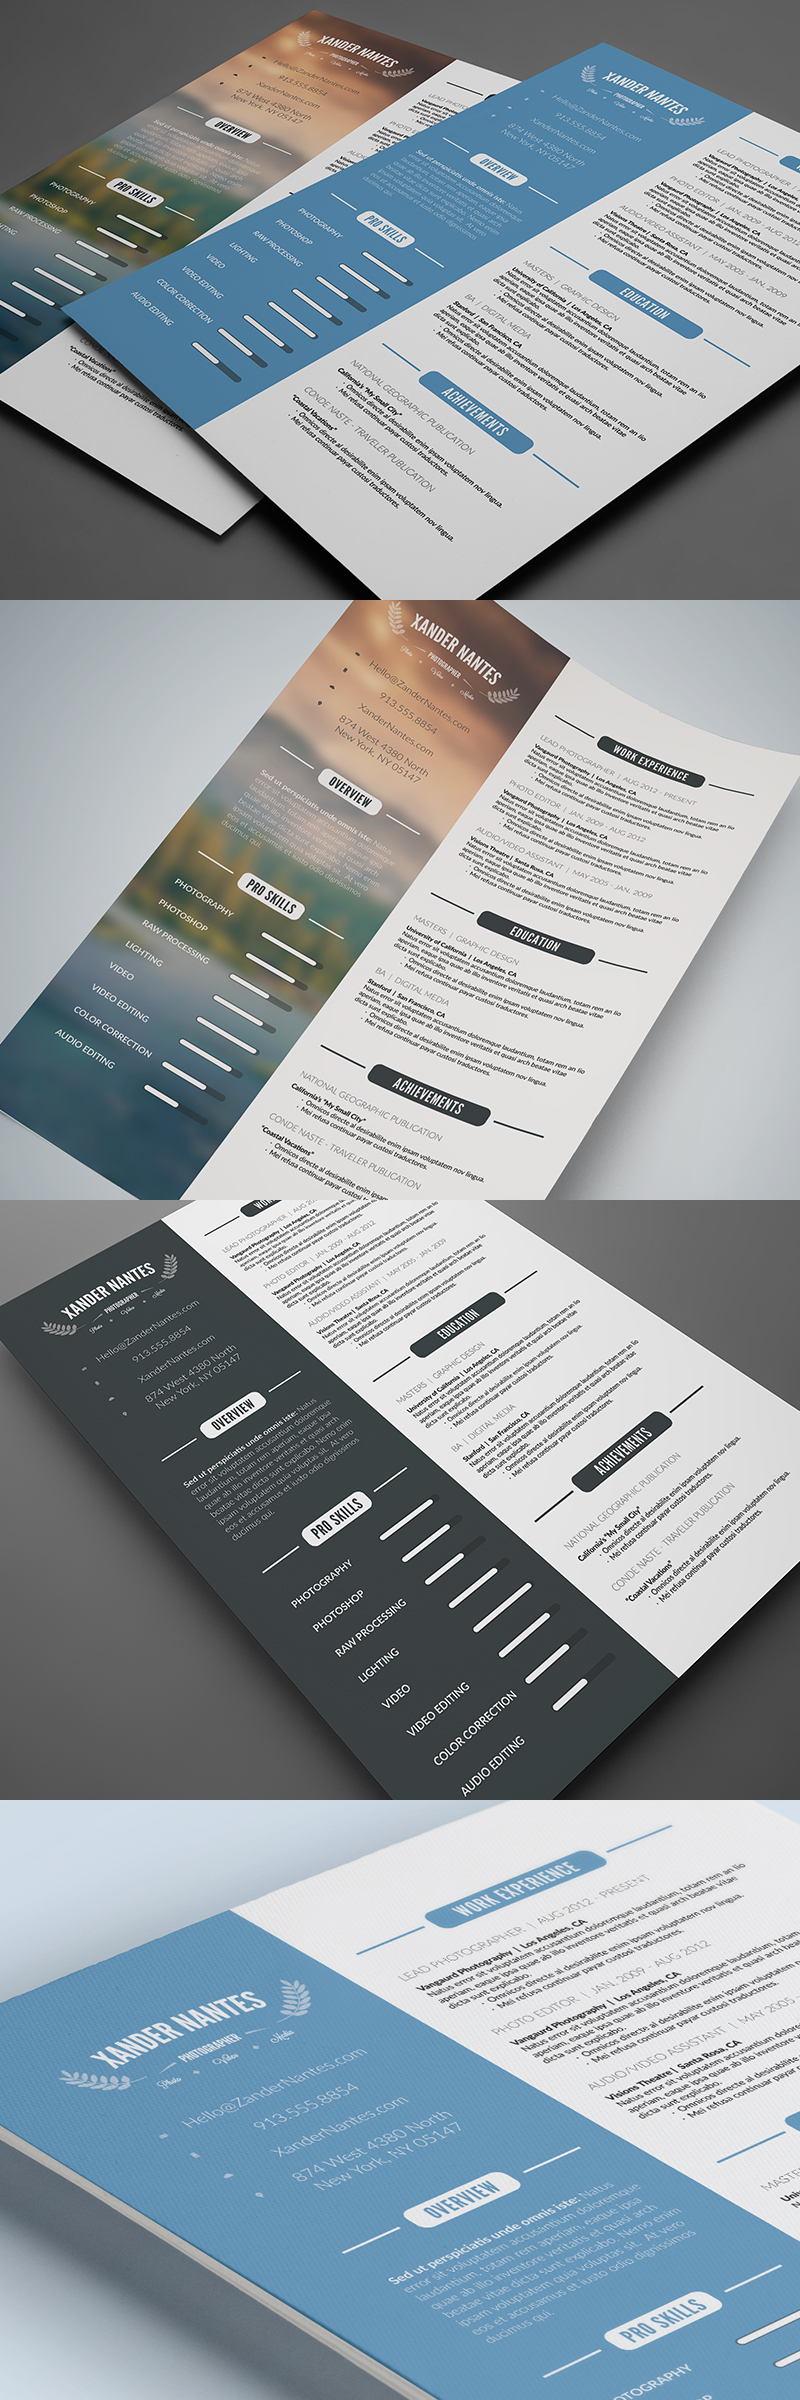 Clean Resume Template: Photoshop PSD Instant Download. Photographer, Designer, Job, Business, CV Template